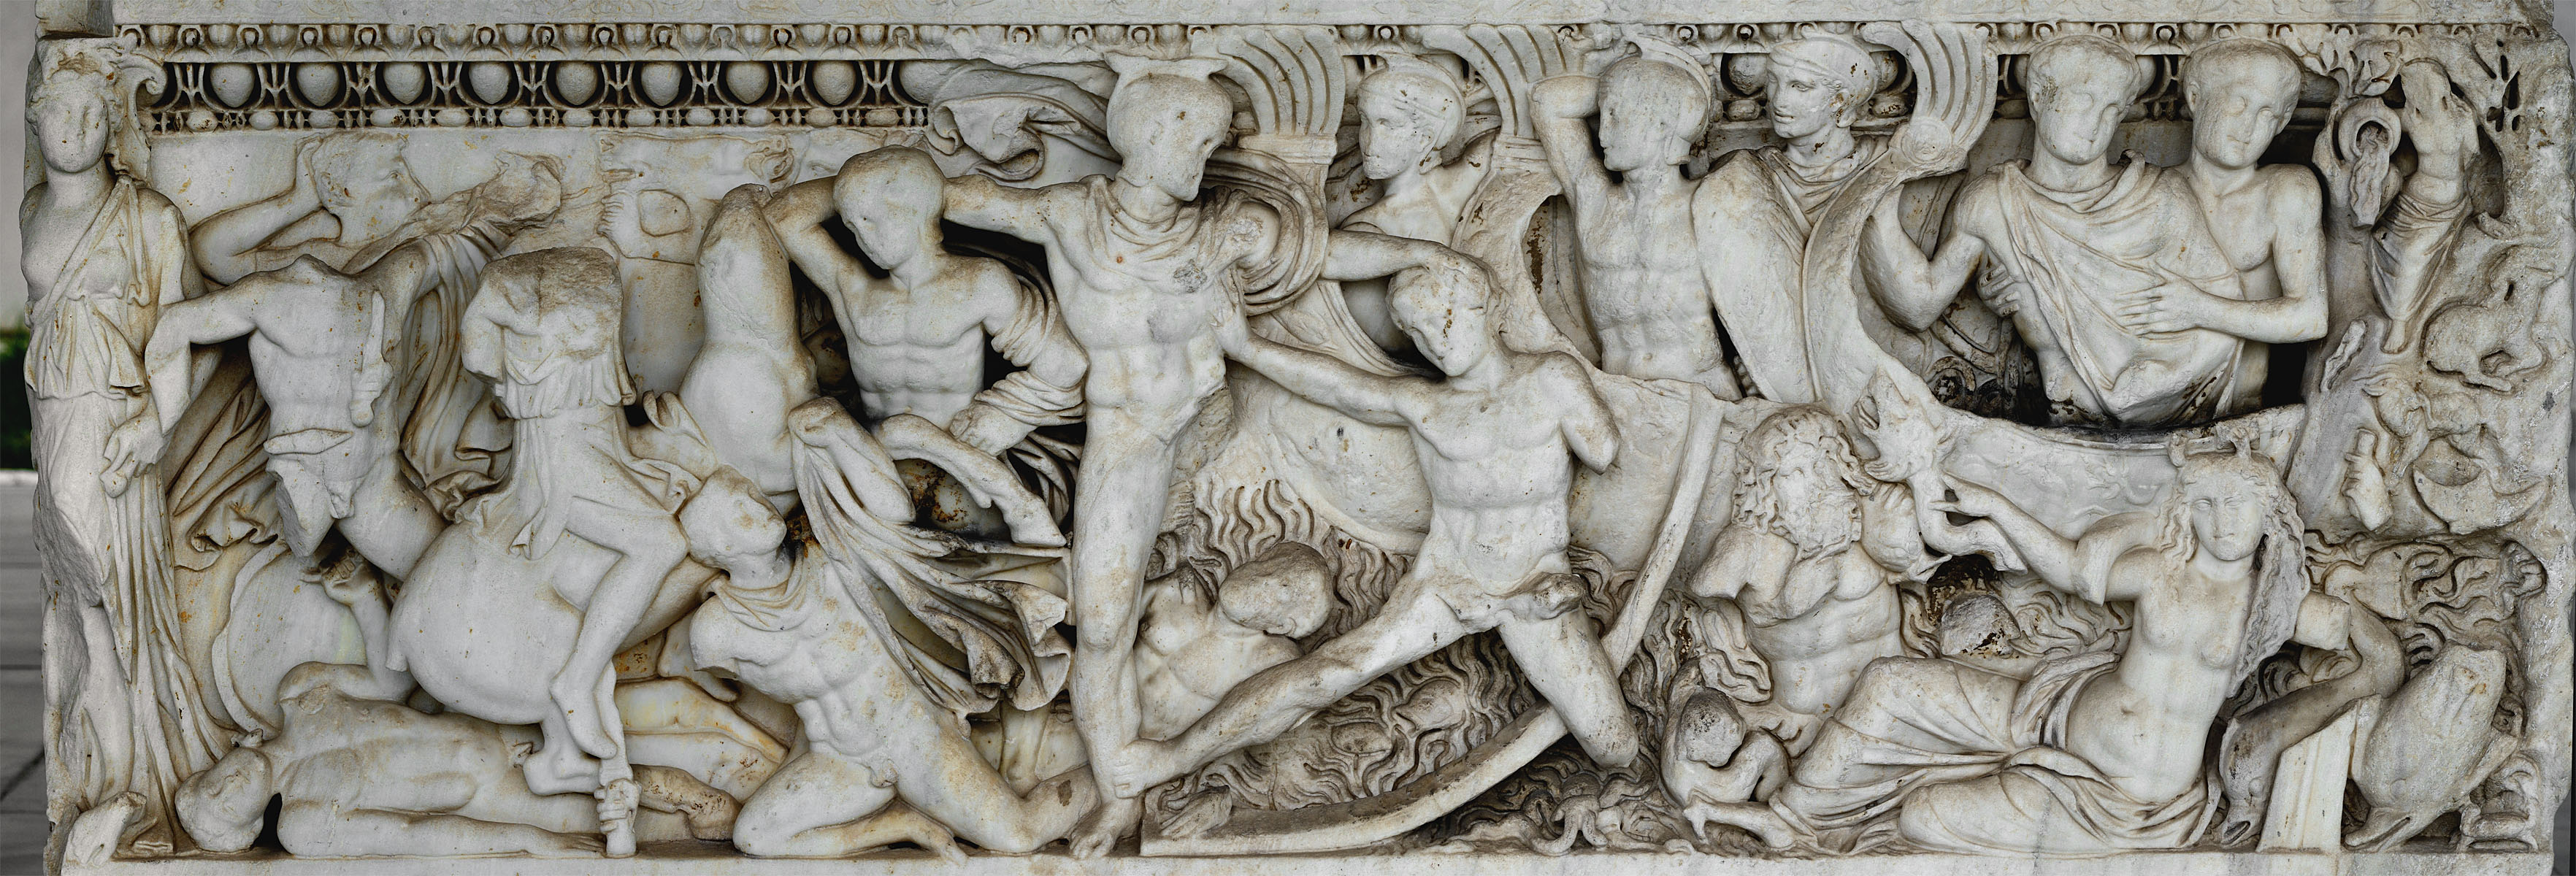 Attic sarcophagus with scenes of battles between the Greeks and the Trojan and a scene of Calydonian hunt — front view. Marble. 220—230 CE. Inv. No. 1246. Thessaloniki, Archaeological Museum